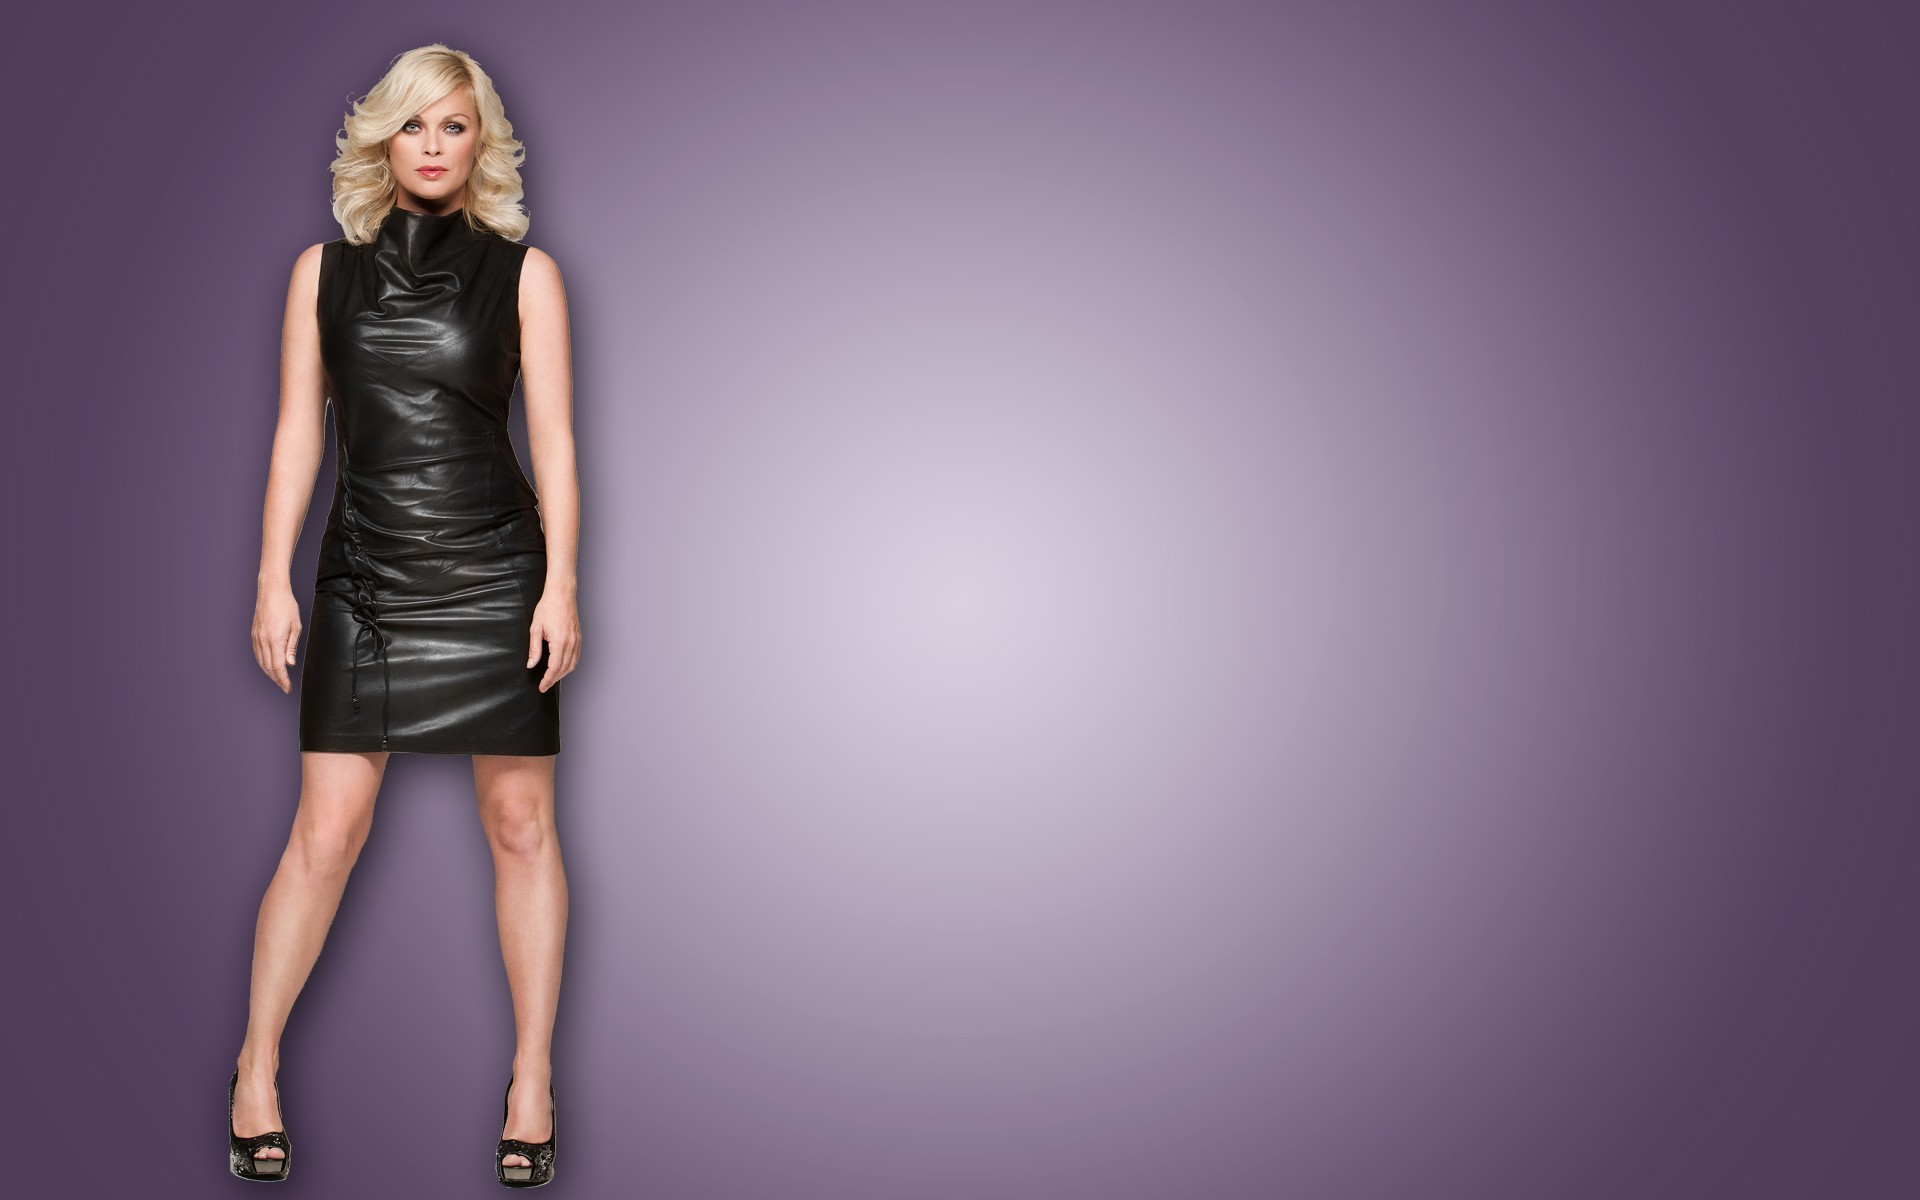 leather blondes legs woman HD Wallpaper